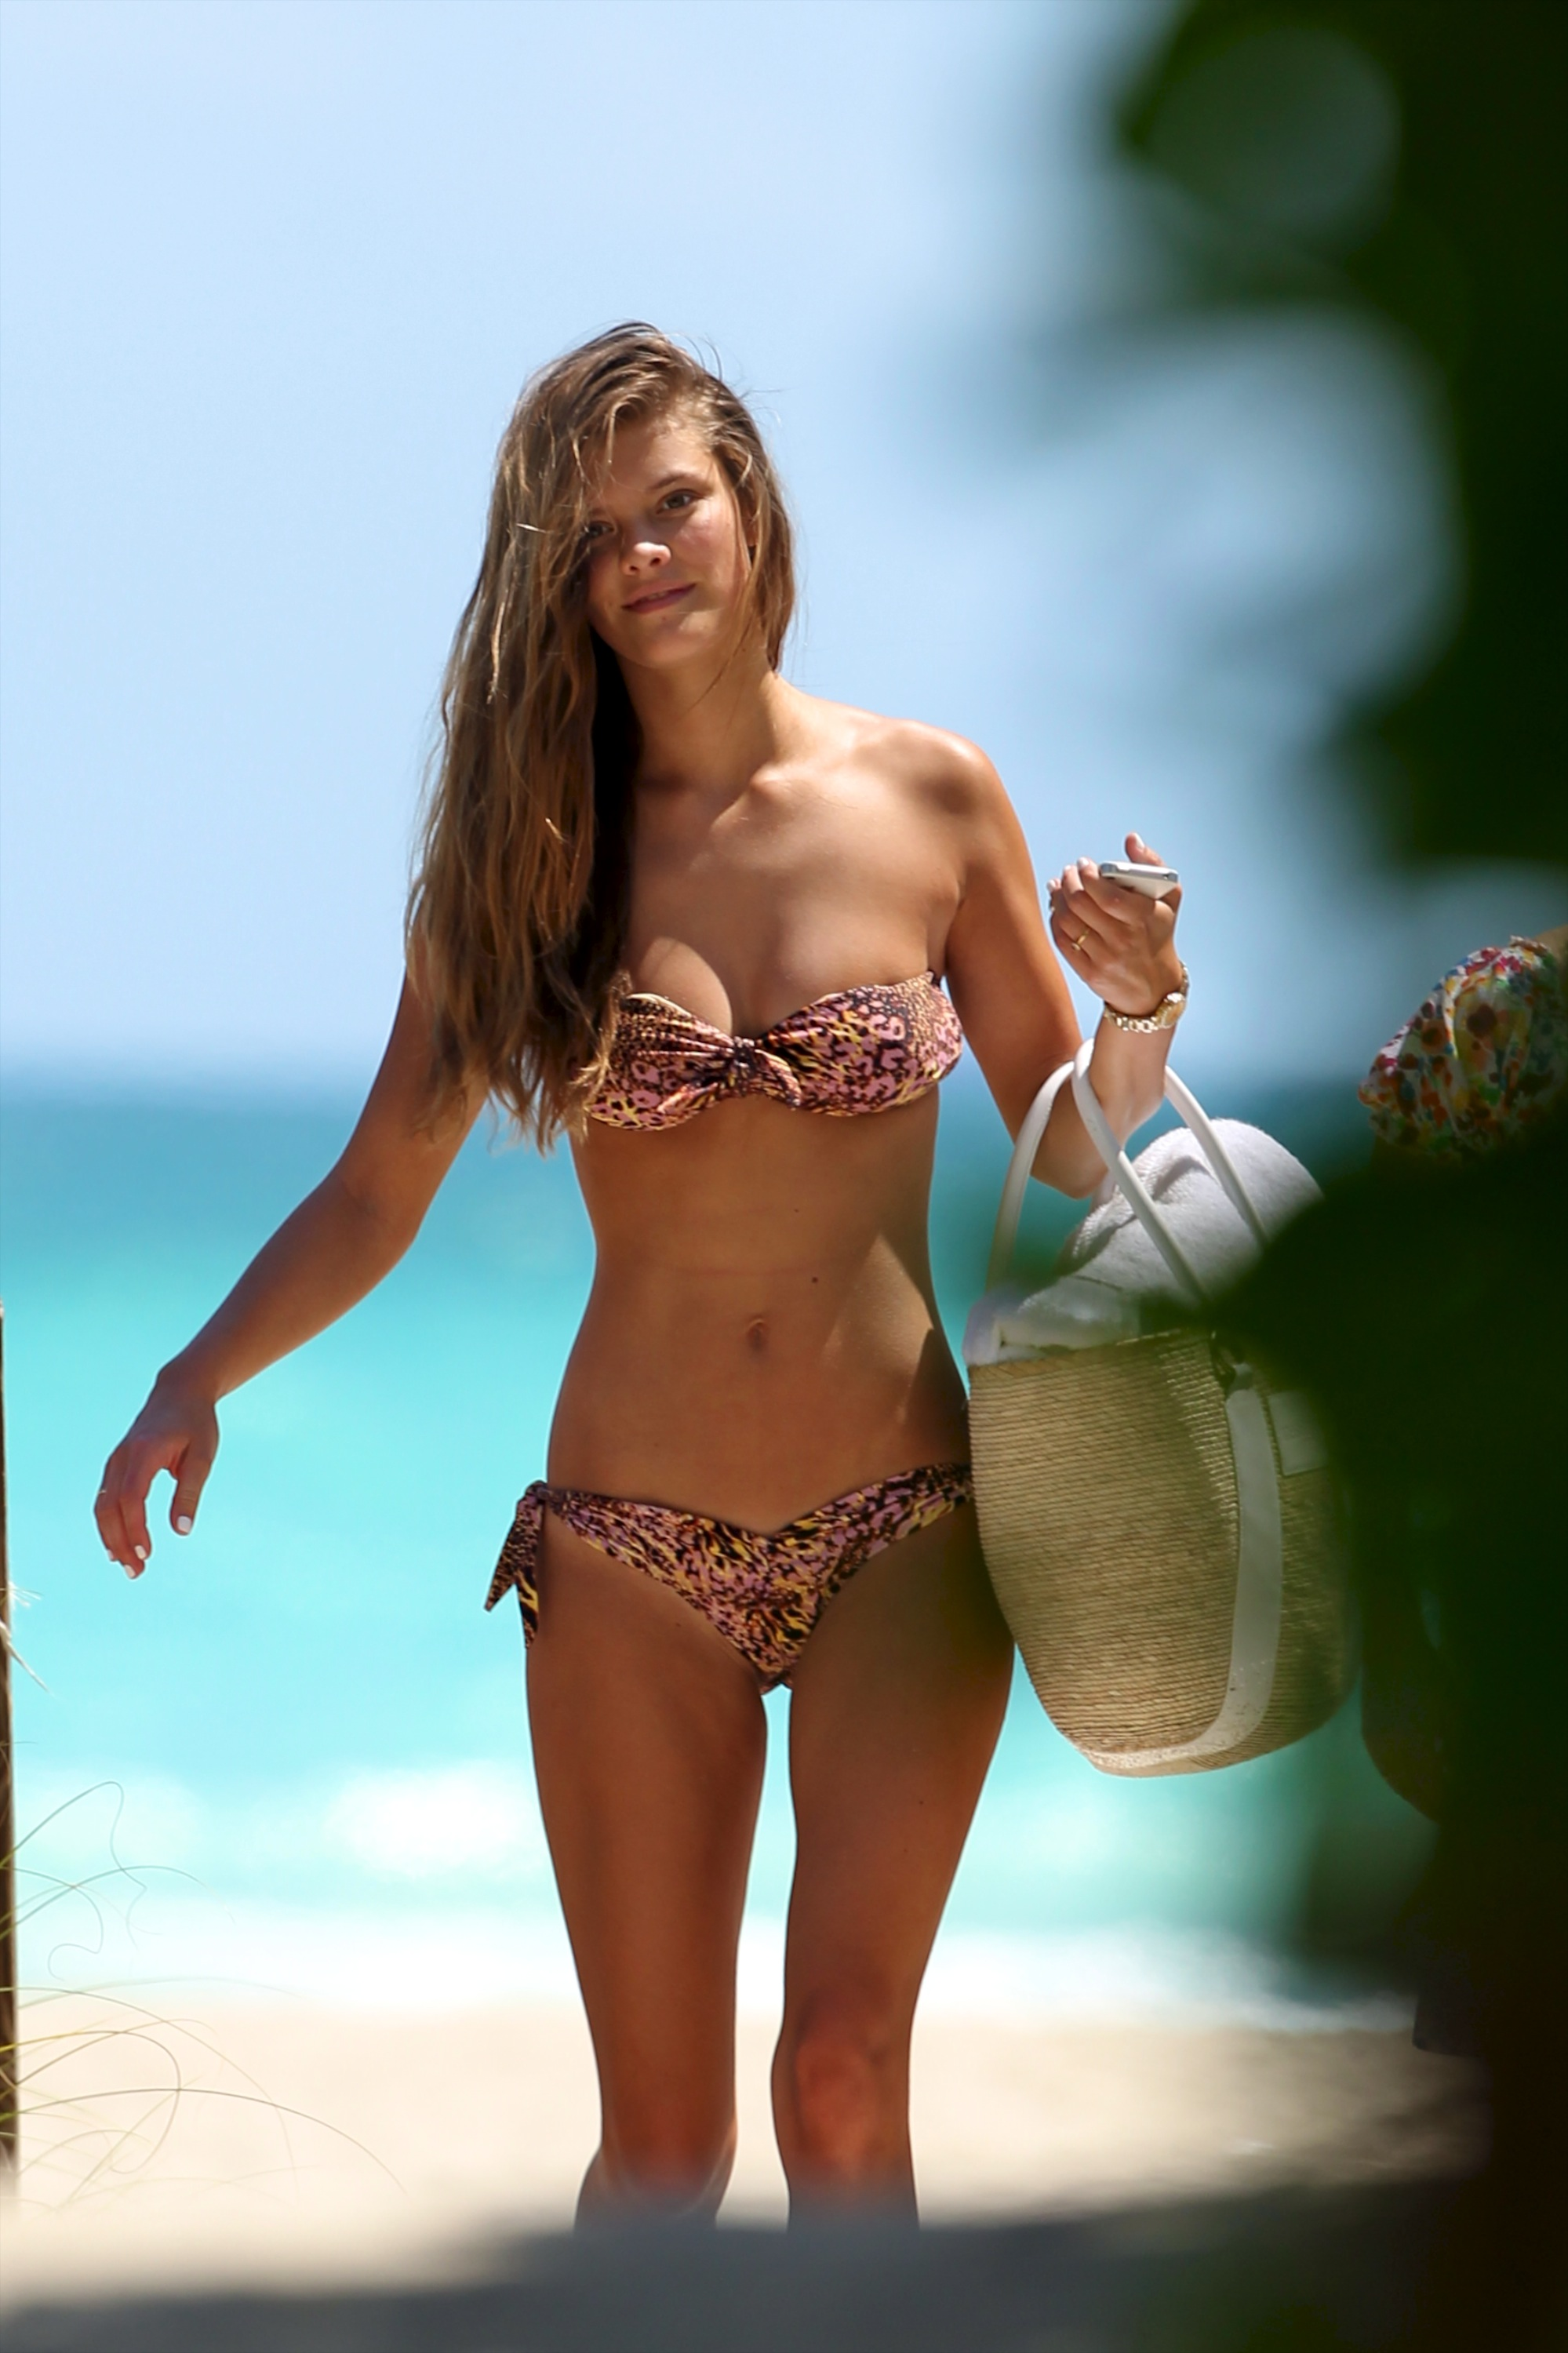 nina-agdal-beach-candids-miami-march-19-2012-14